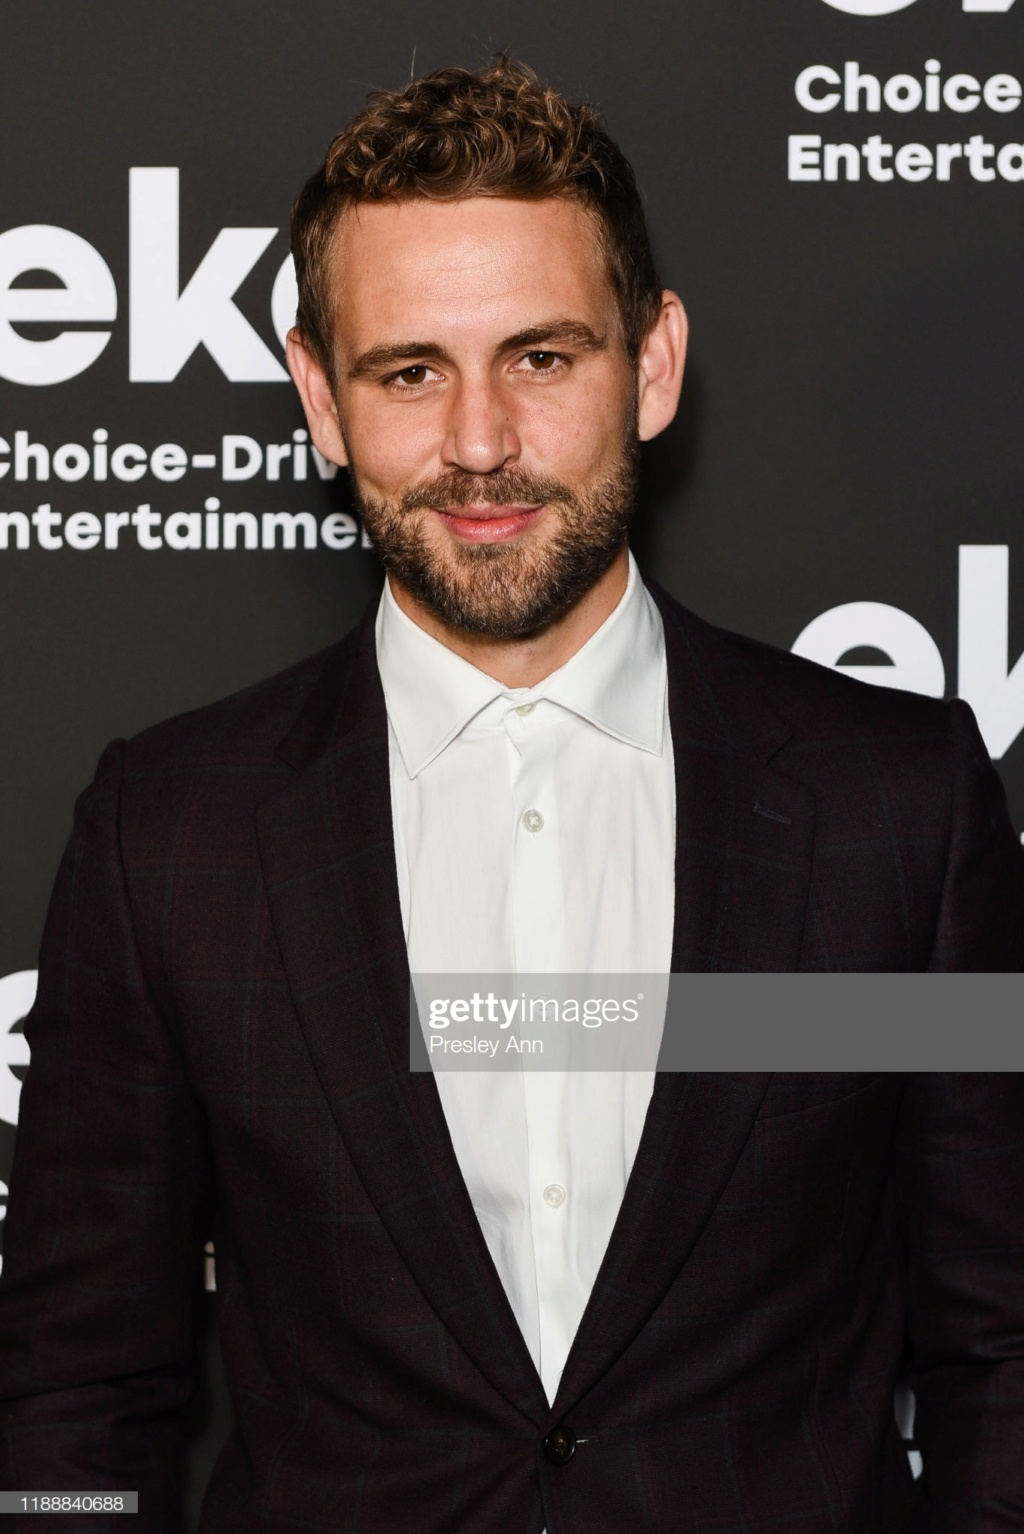 Nick Viall - Bachelor 21 - FAN Forum - Discussion #27 - Page 66 Gettyi15